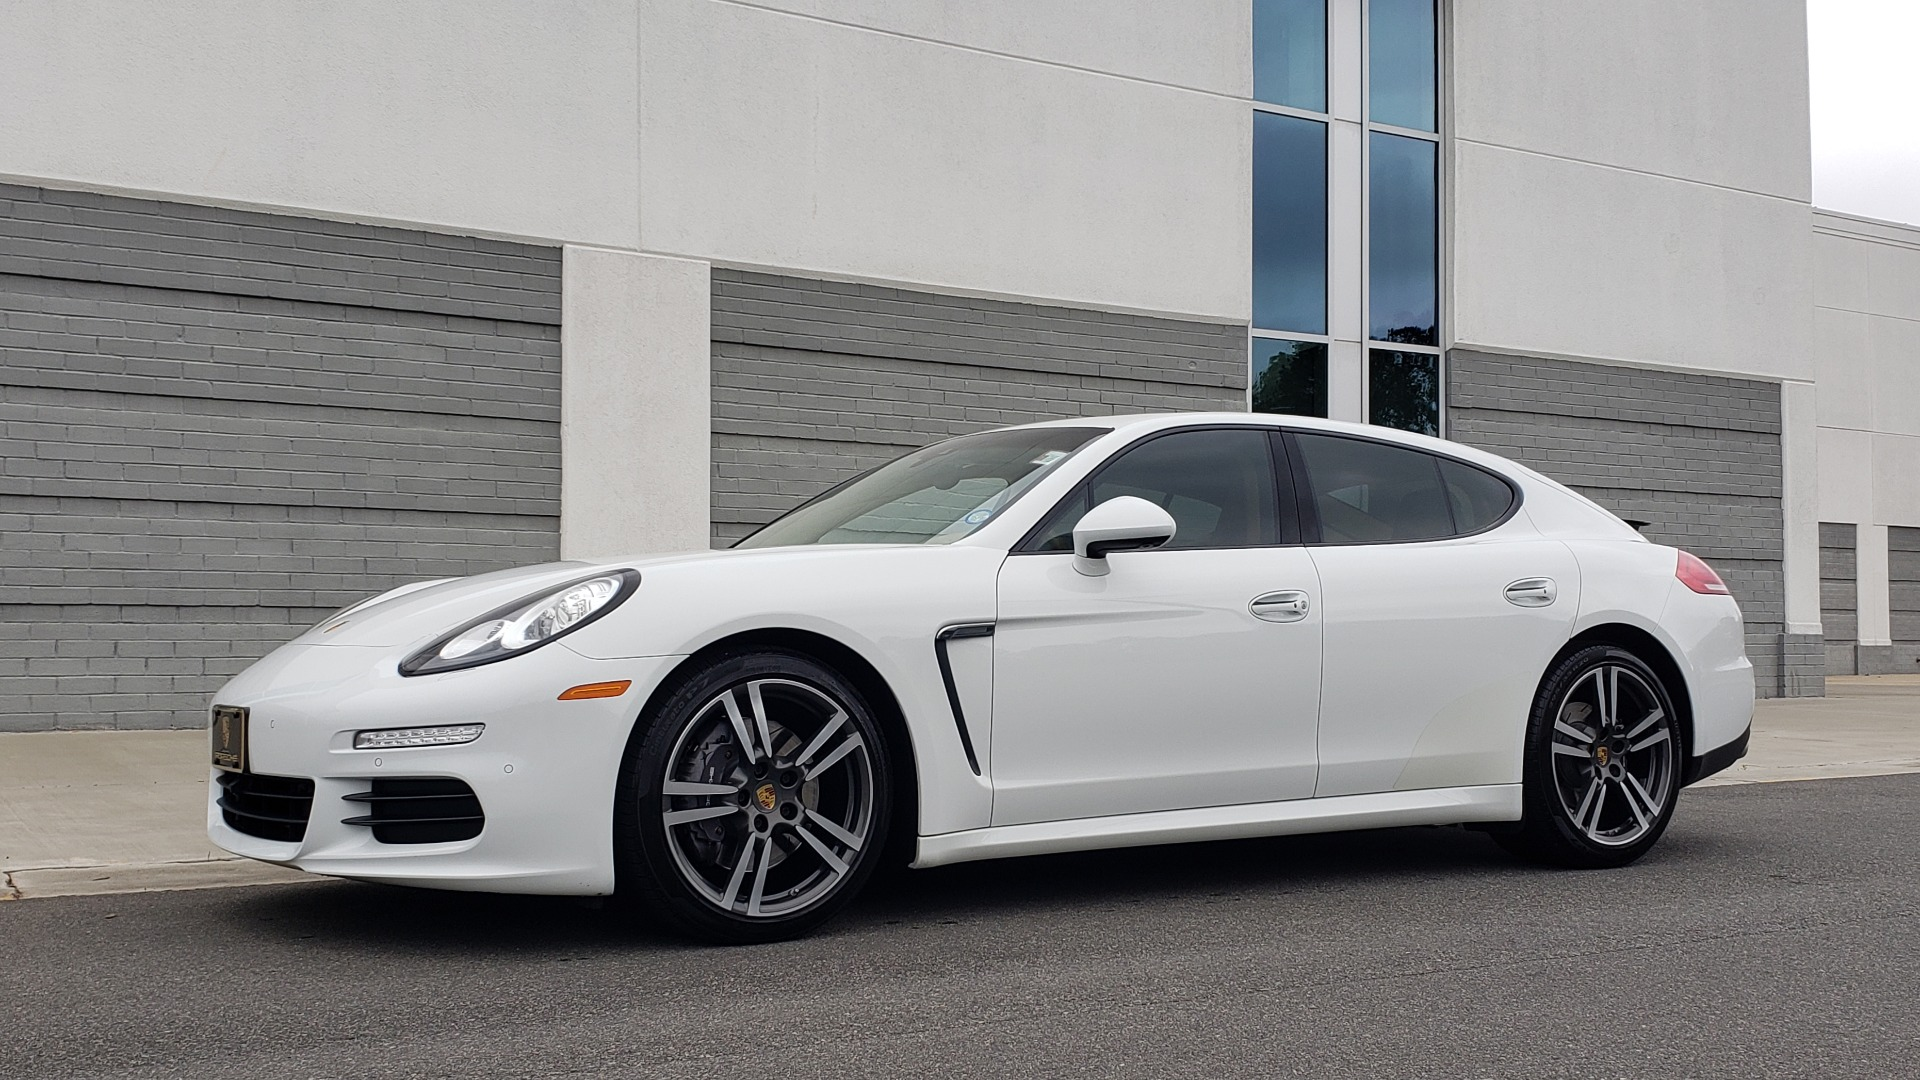 Used 2016 Porsche PANAMERA EDITION / 3.6L V6 / PDK TANS / PREMIUM PKG / LDW / PARK ASSIST for sale Sold at Formula Imports in Charlotte NC 28227 7